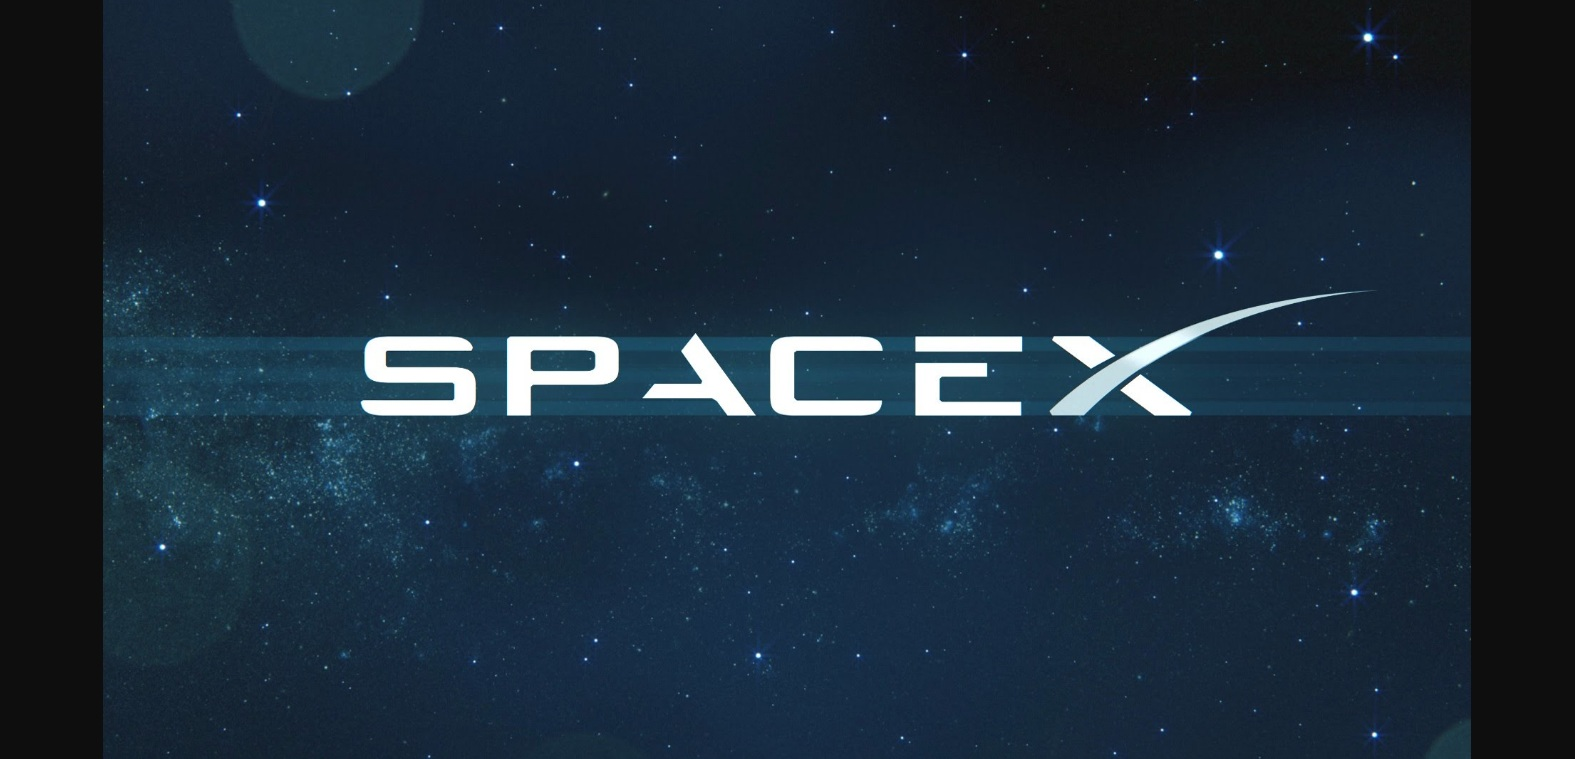 SpaceX A big step towards space exploration